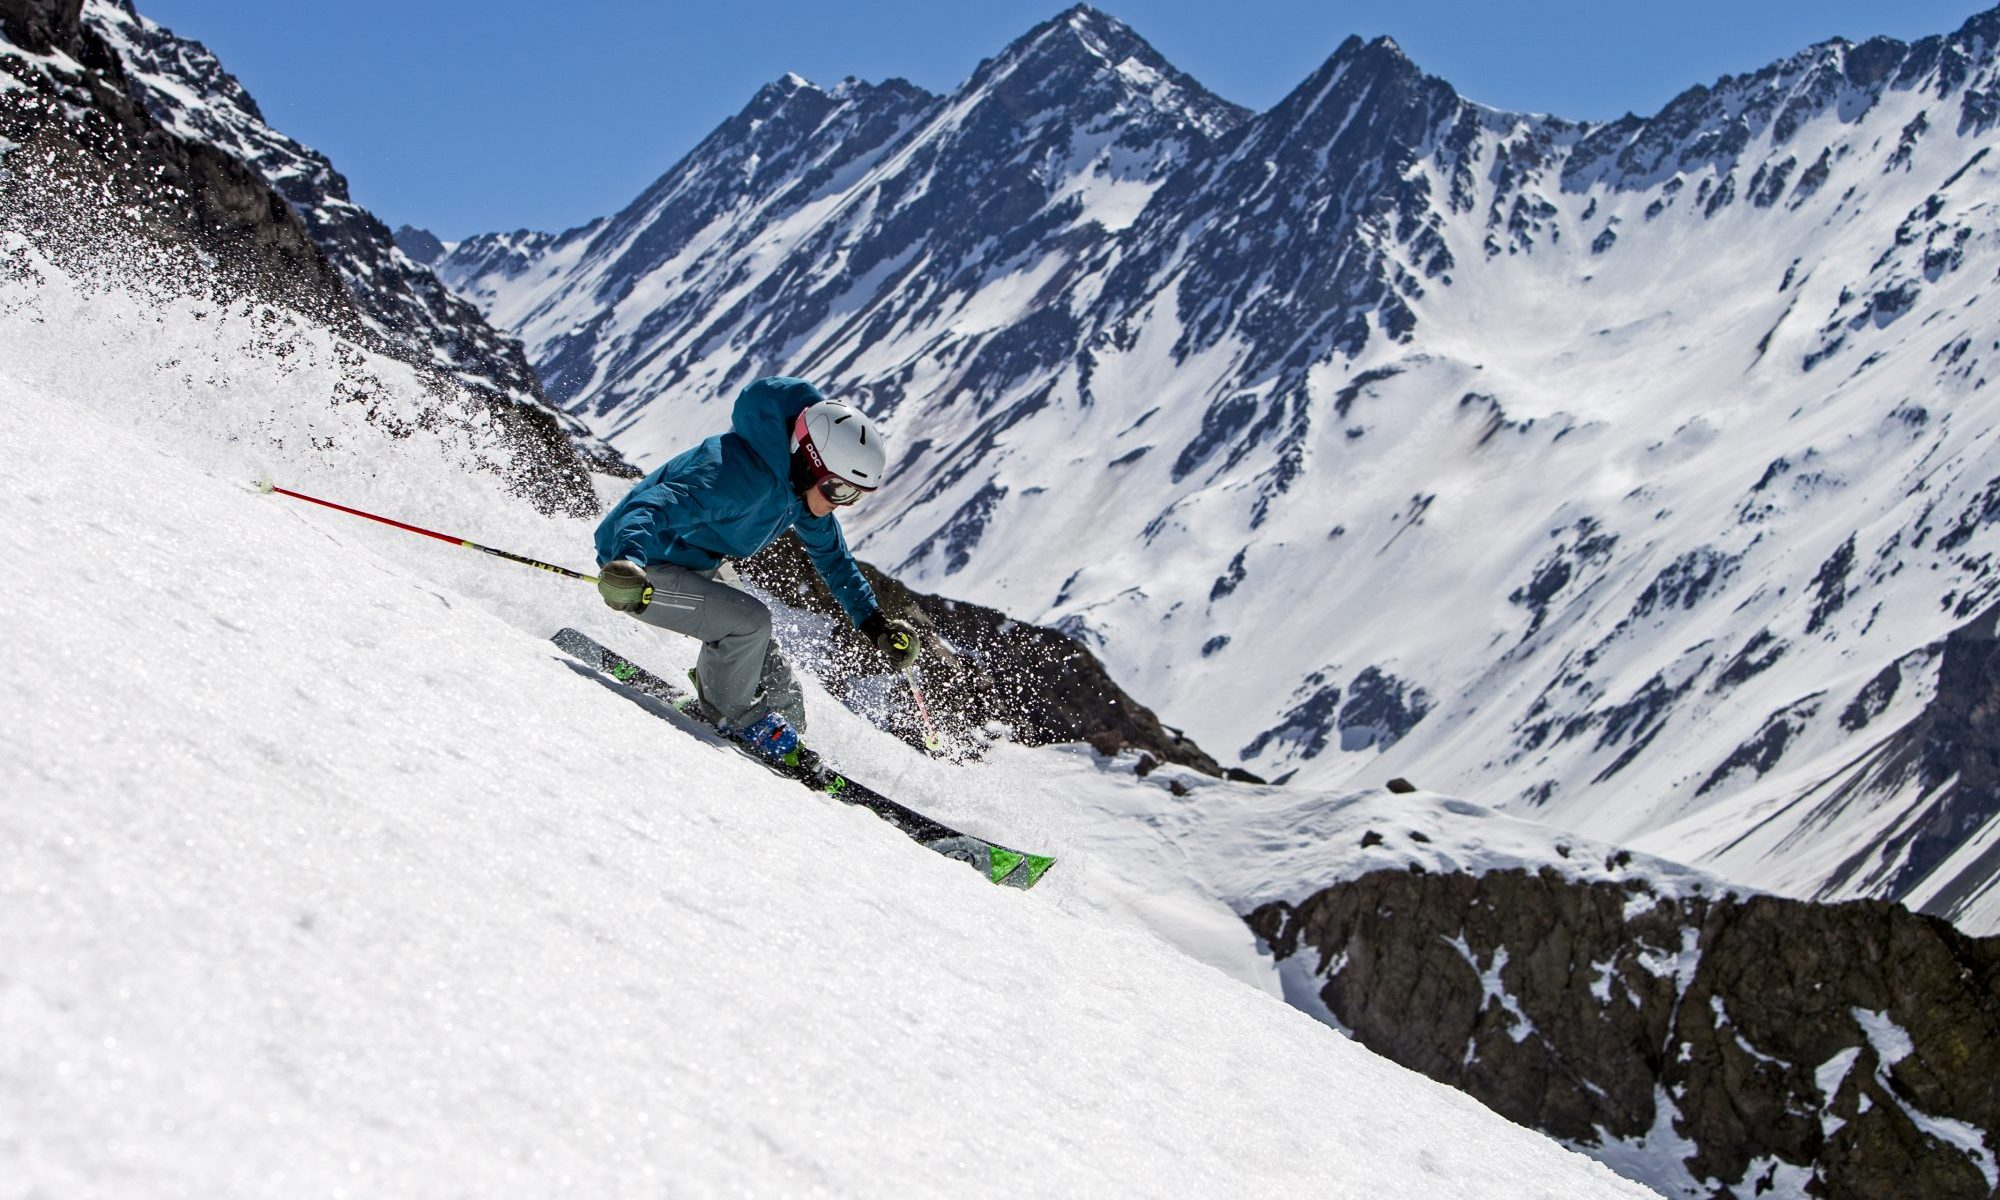 September 17, 2016 - Portillo, Chile: PSIA Demo Team member, Ann Schorling enjoying a day of corn snow and freeskiing in the Andes.